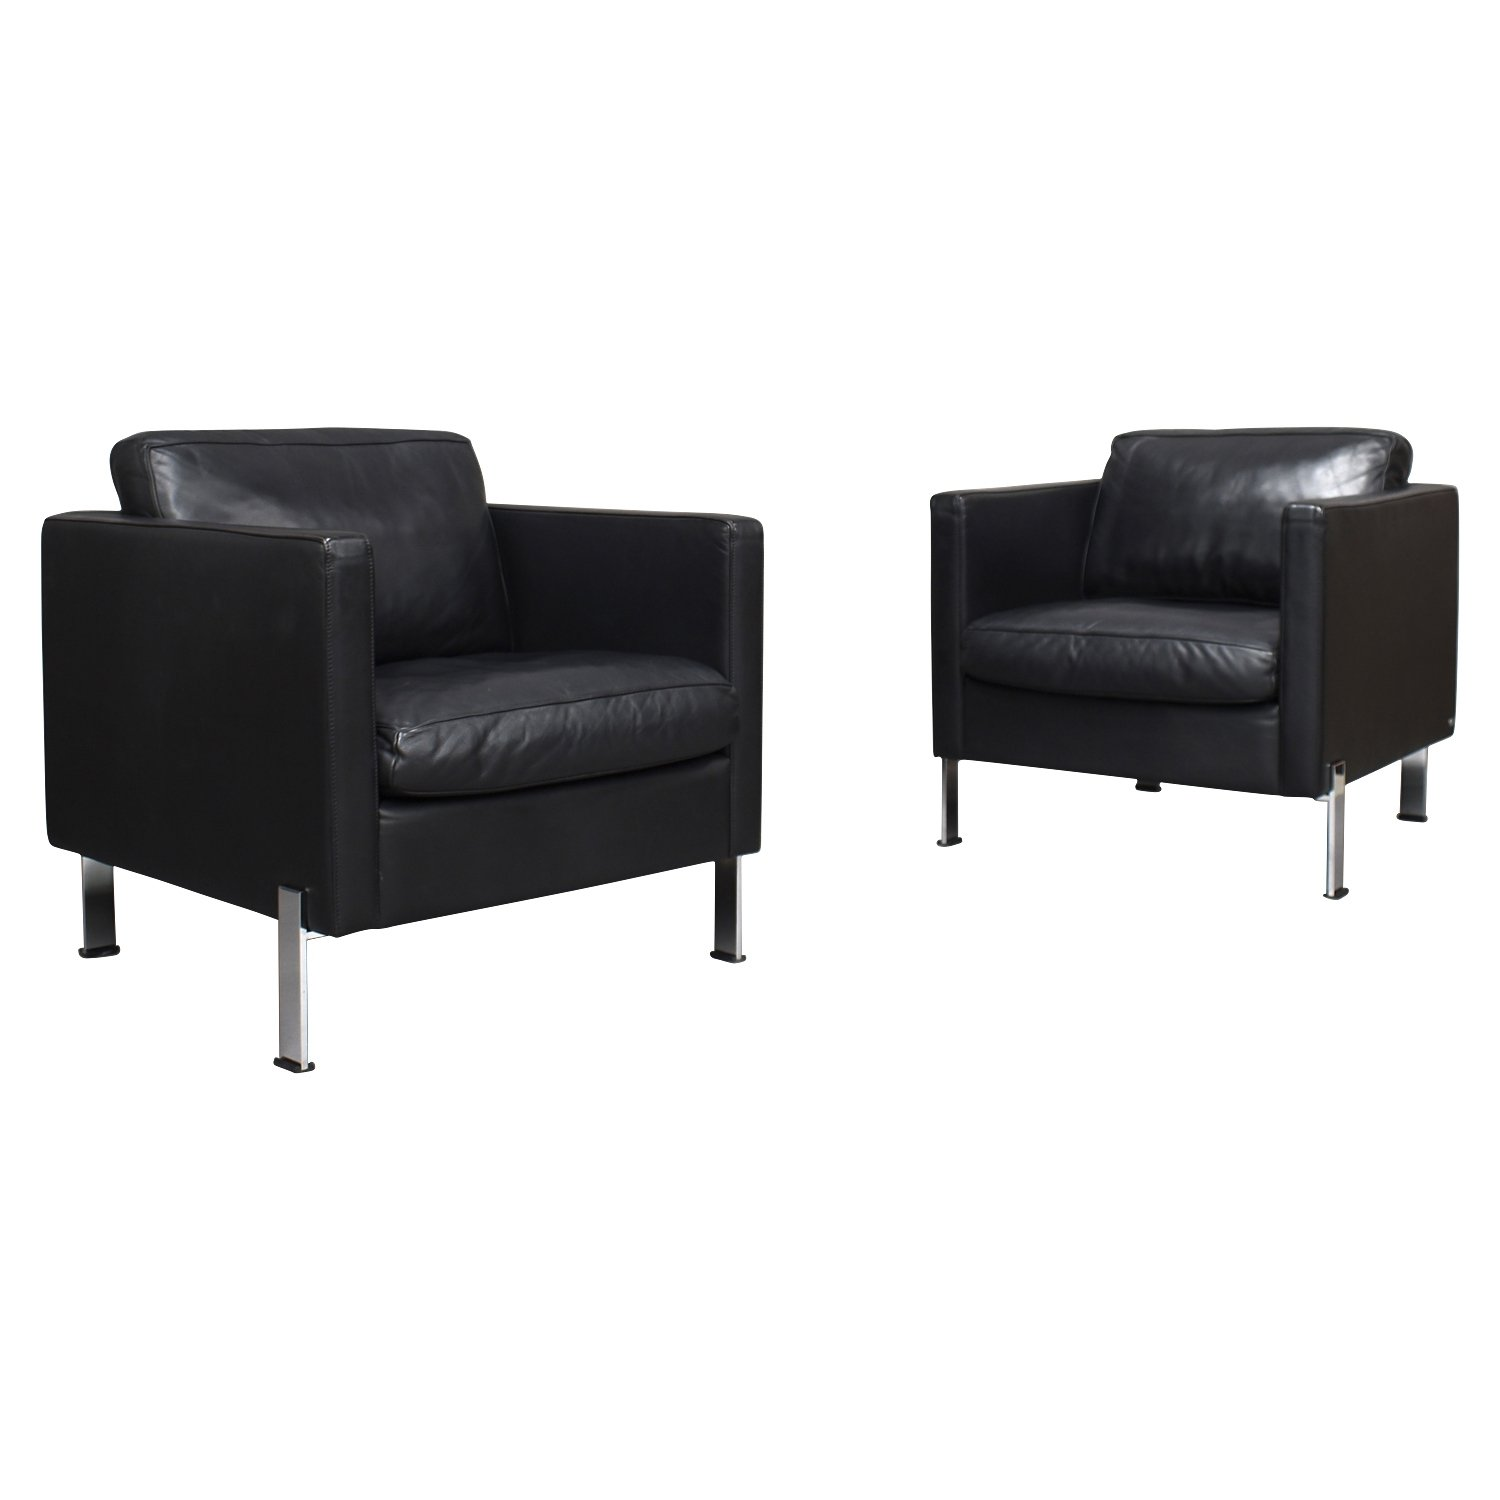 Magnificent Pair Of De Sede Ds 118 Lounge Chairs In Black Leather Pabps2019 Chair Design Images Pabps2019Com